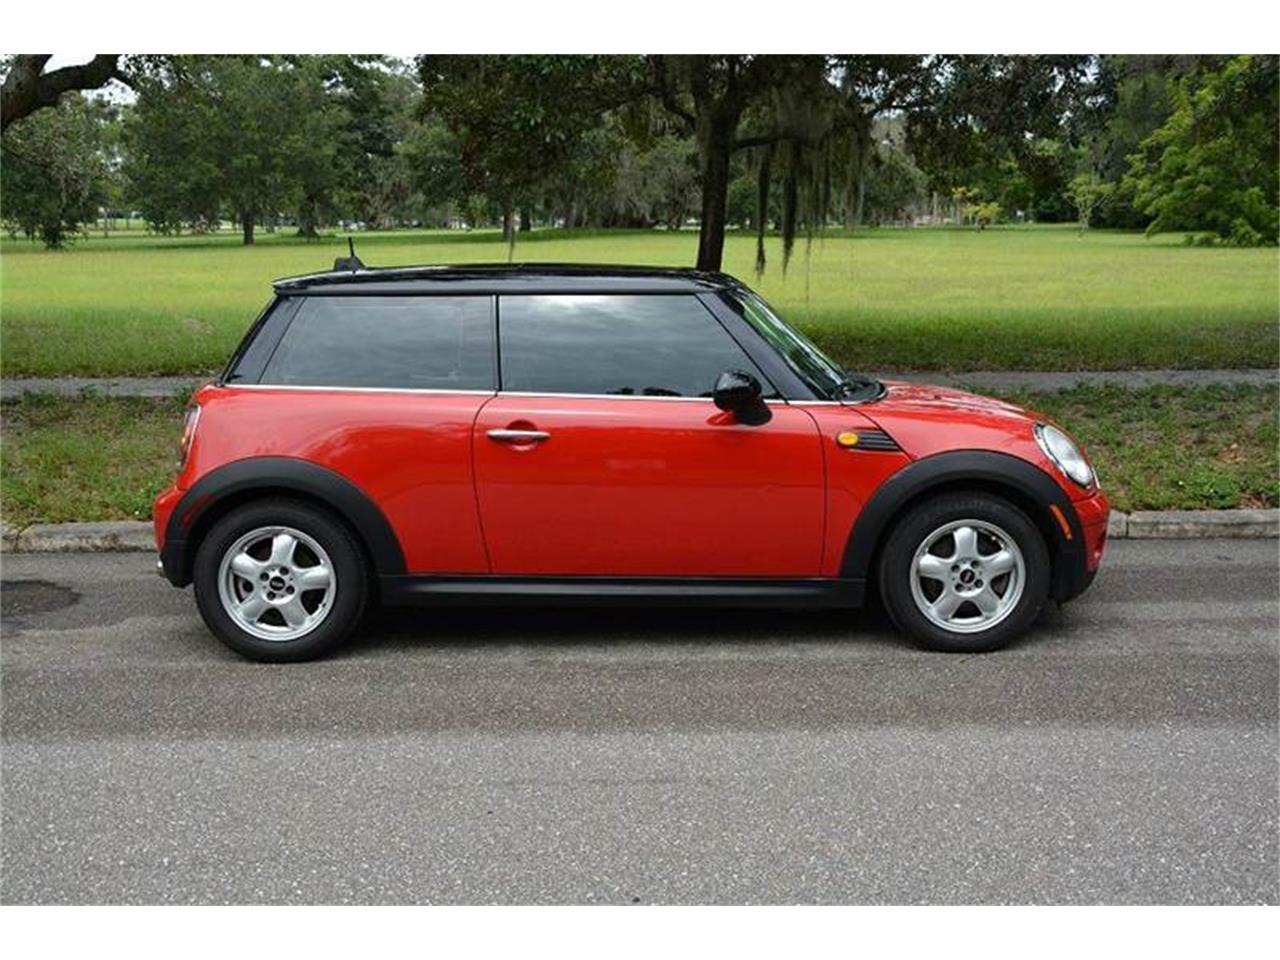 Large Picture of 2007 MINI Cooper located in Florida - $9,500.00 Offered by PJ's Auto World - JJP2